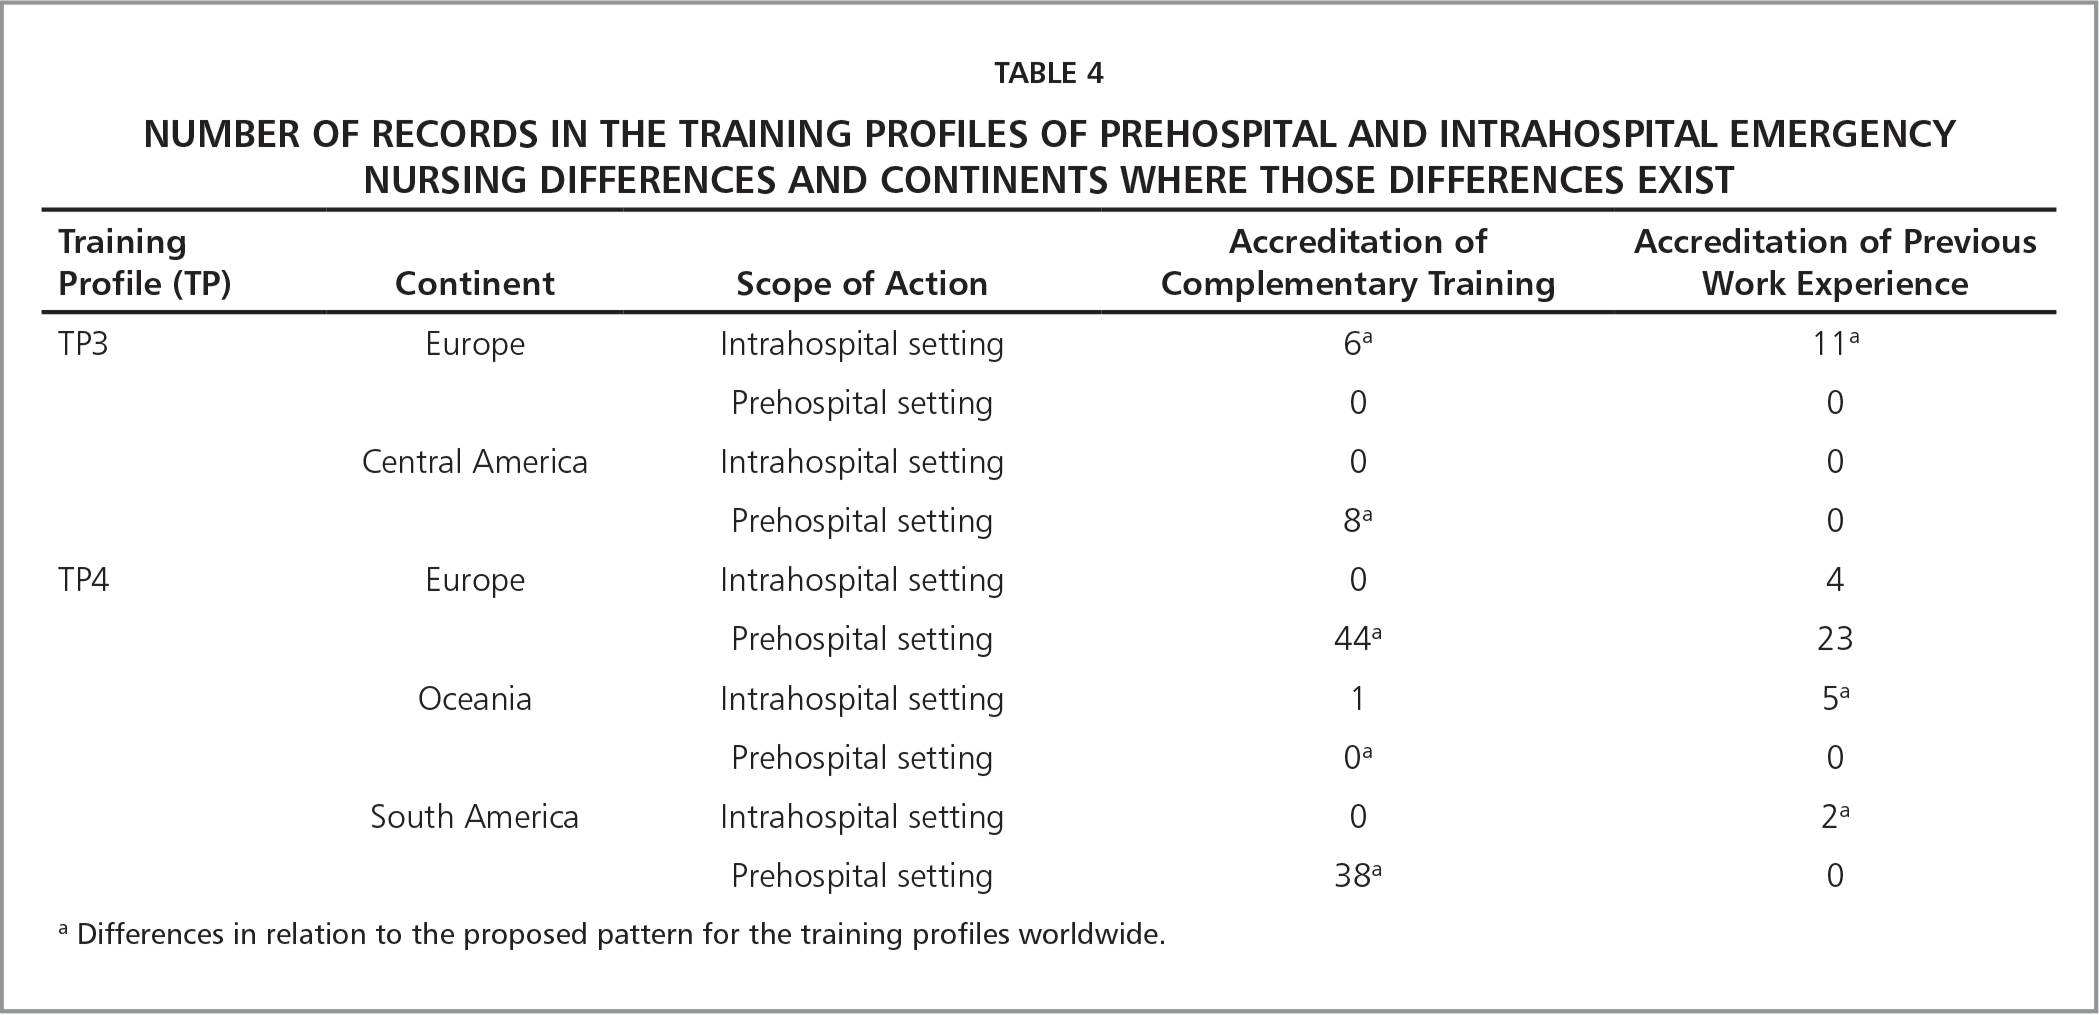 Number of Records in the Training Profiles of Prehospital and Intrahospital Emergency Nursing Differences and Continents Where Those Differences Exist